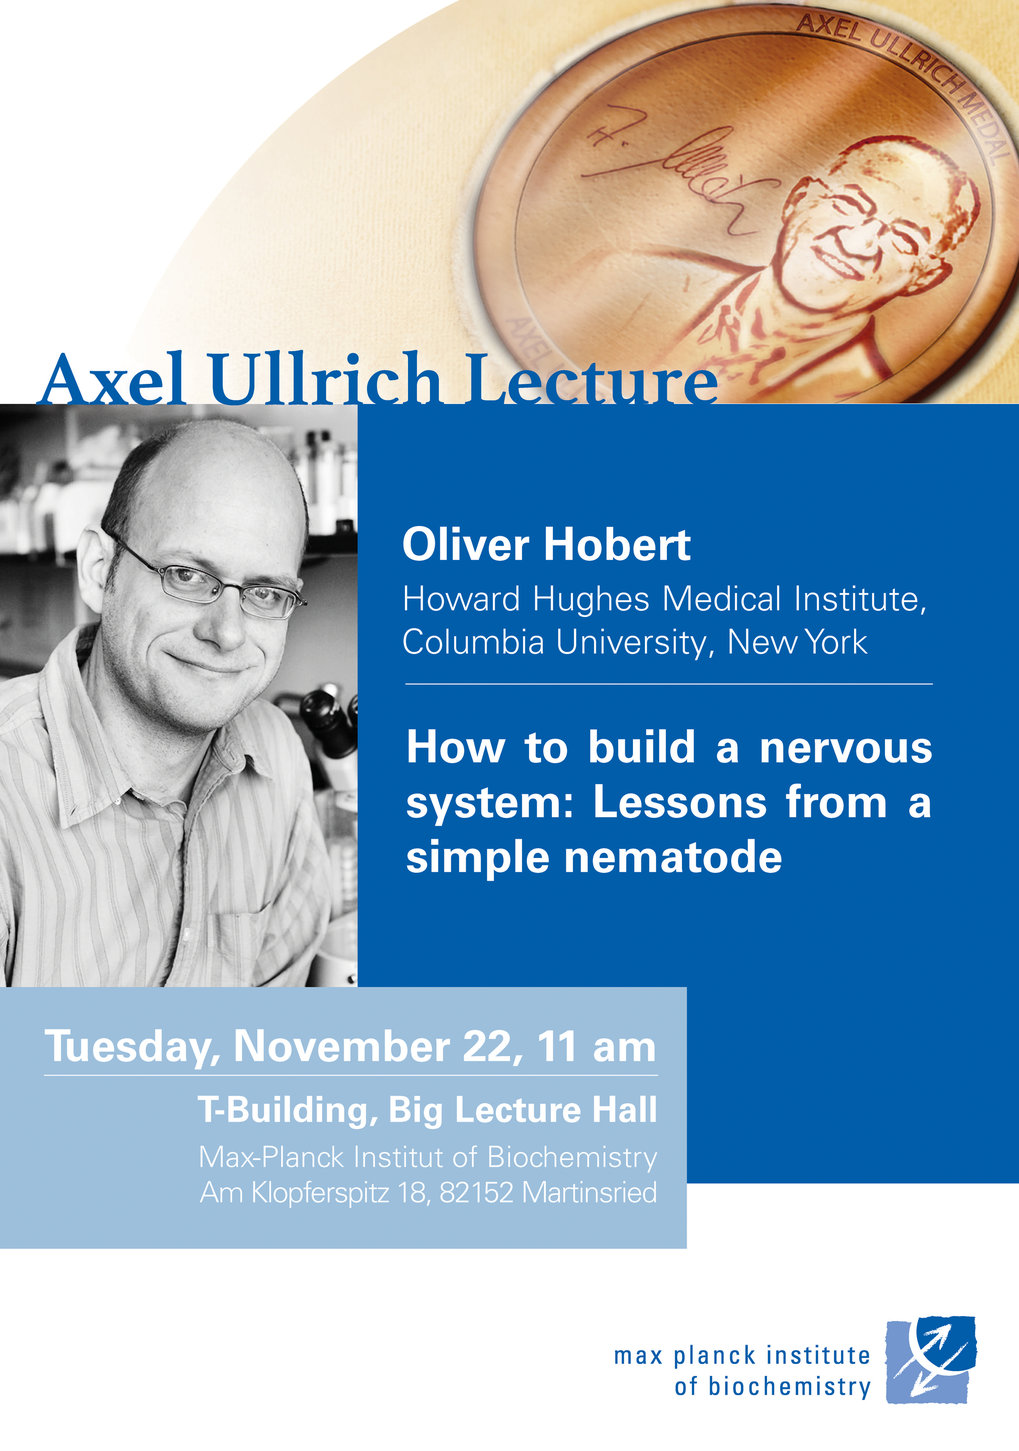 Oliver Hobert - November 22, 11 amHow to build a nervous system: Lessons from a simple nematode